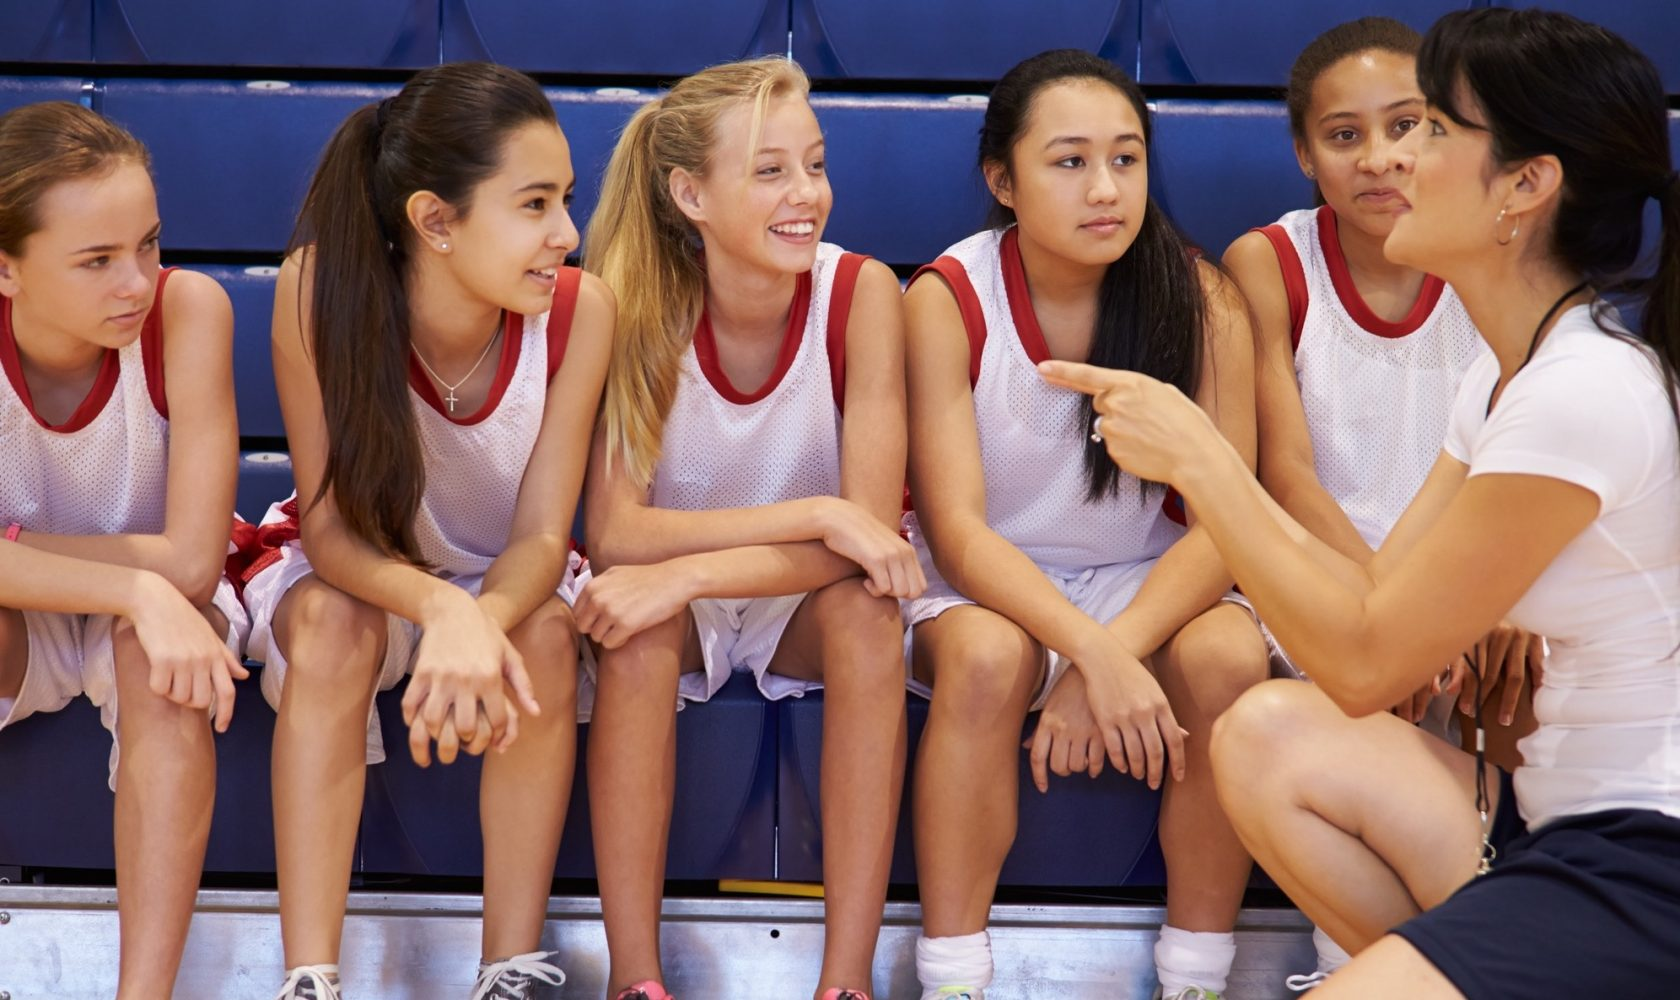 Coach of female high school basketball team